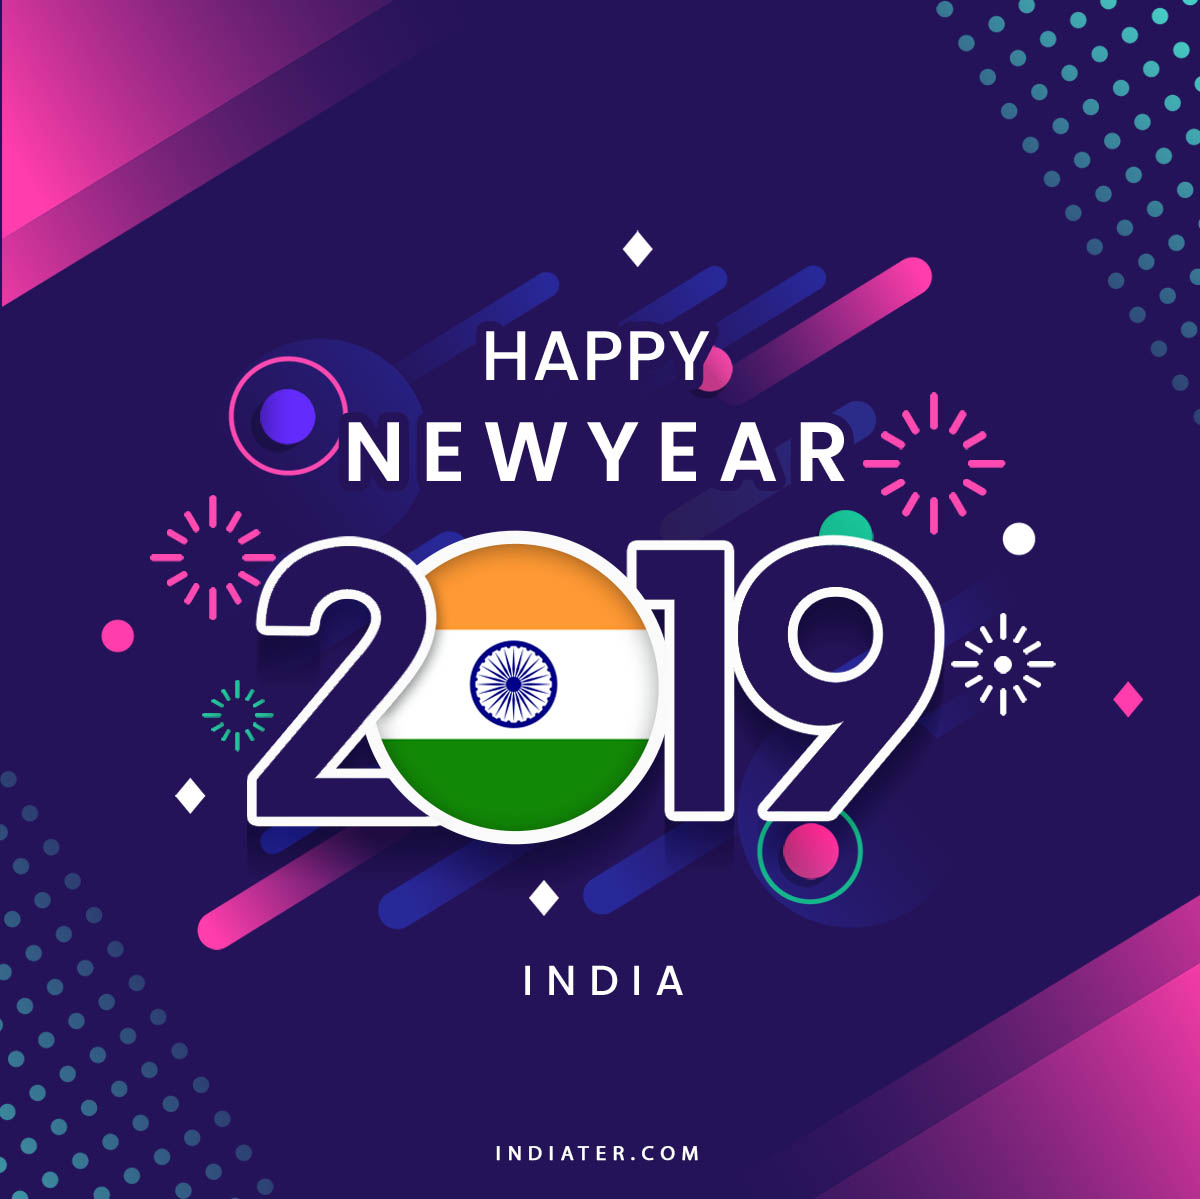 happy new year 2019 wishes greeting with indian flag